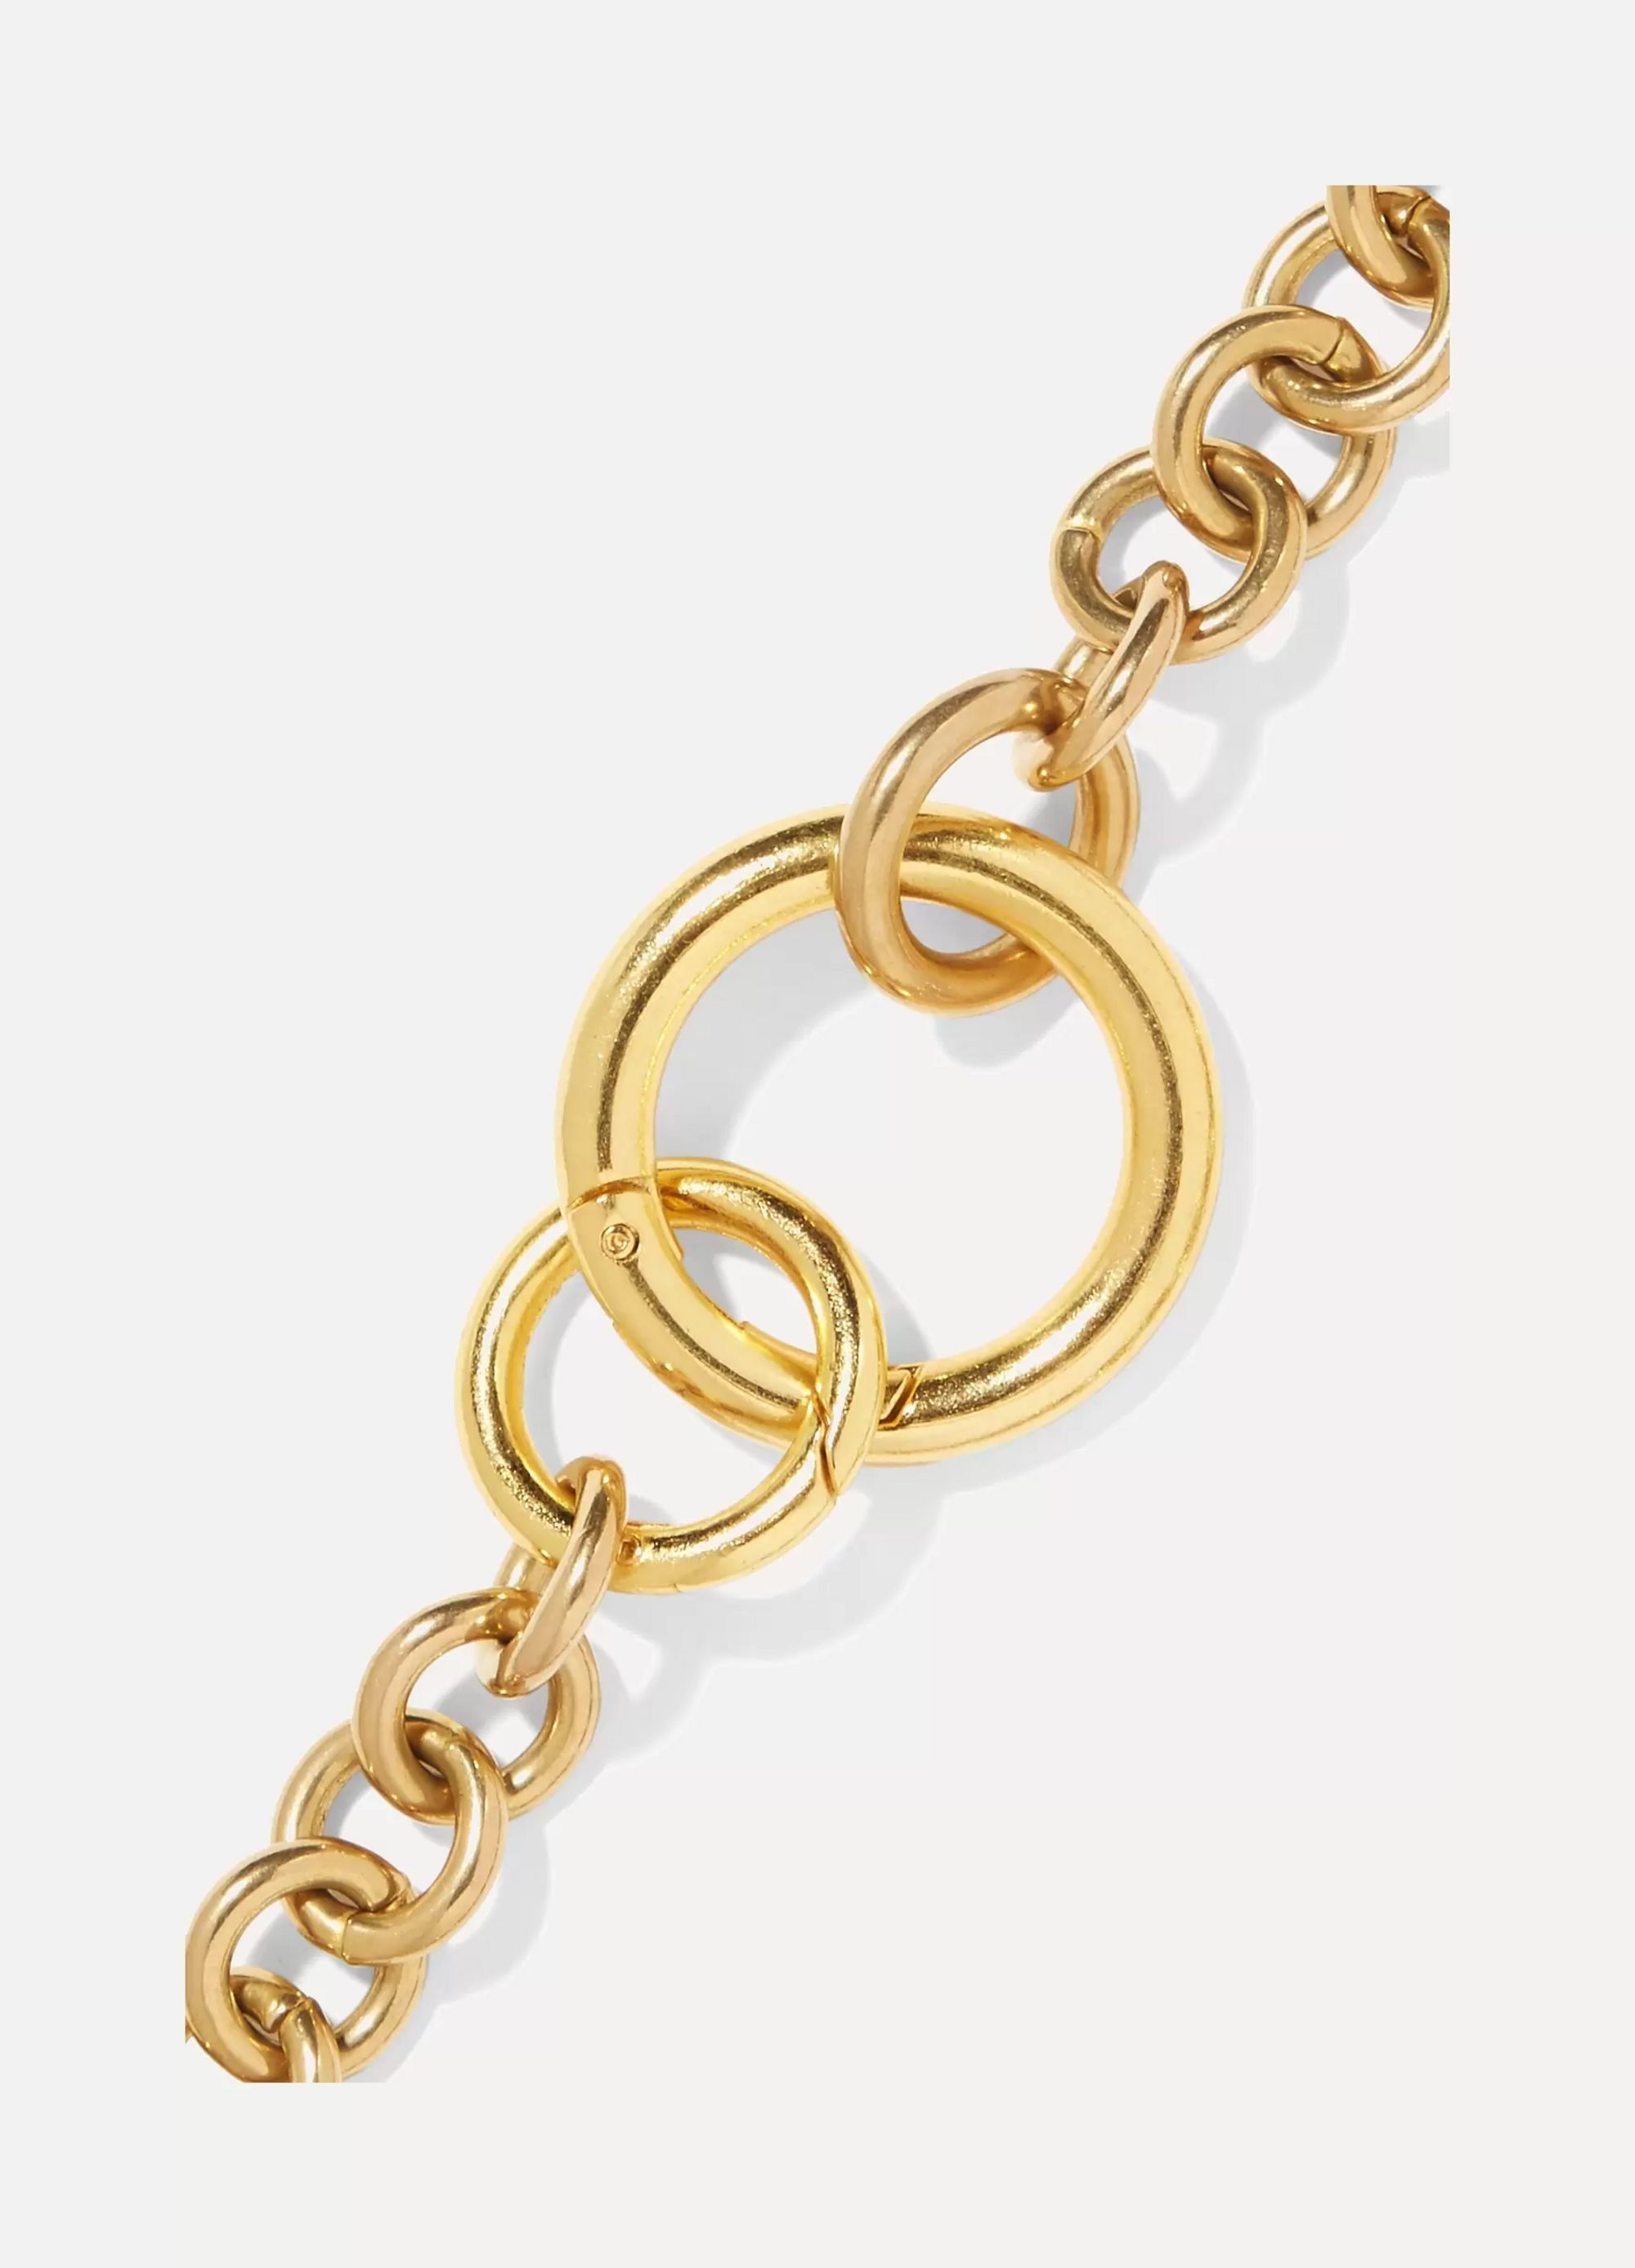 Laura Lombardi Fede gold-tone necklace